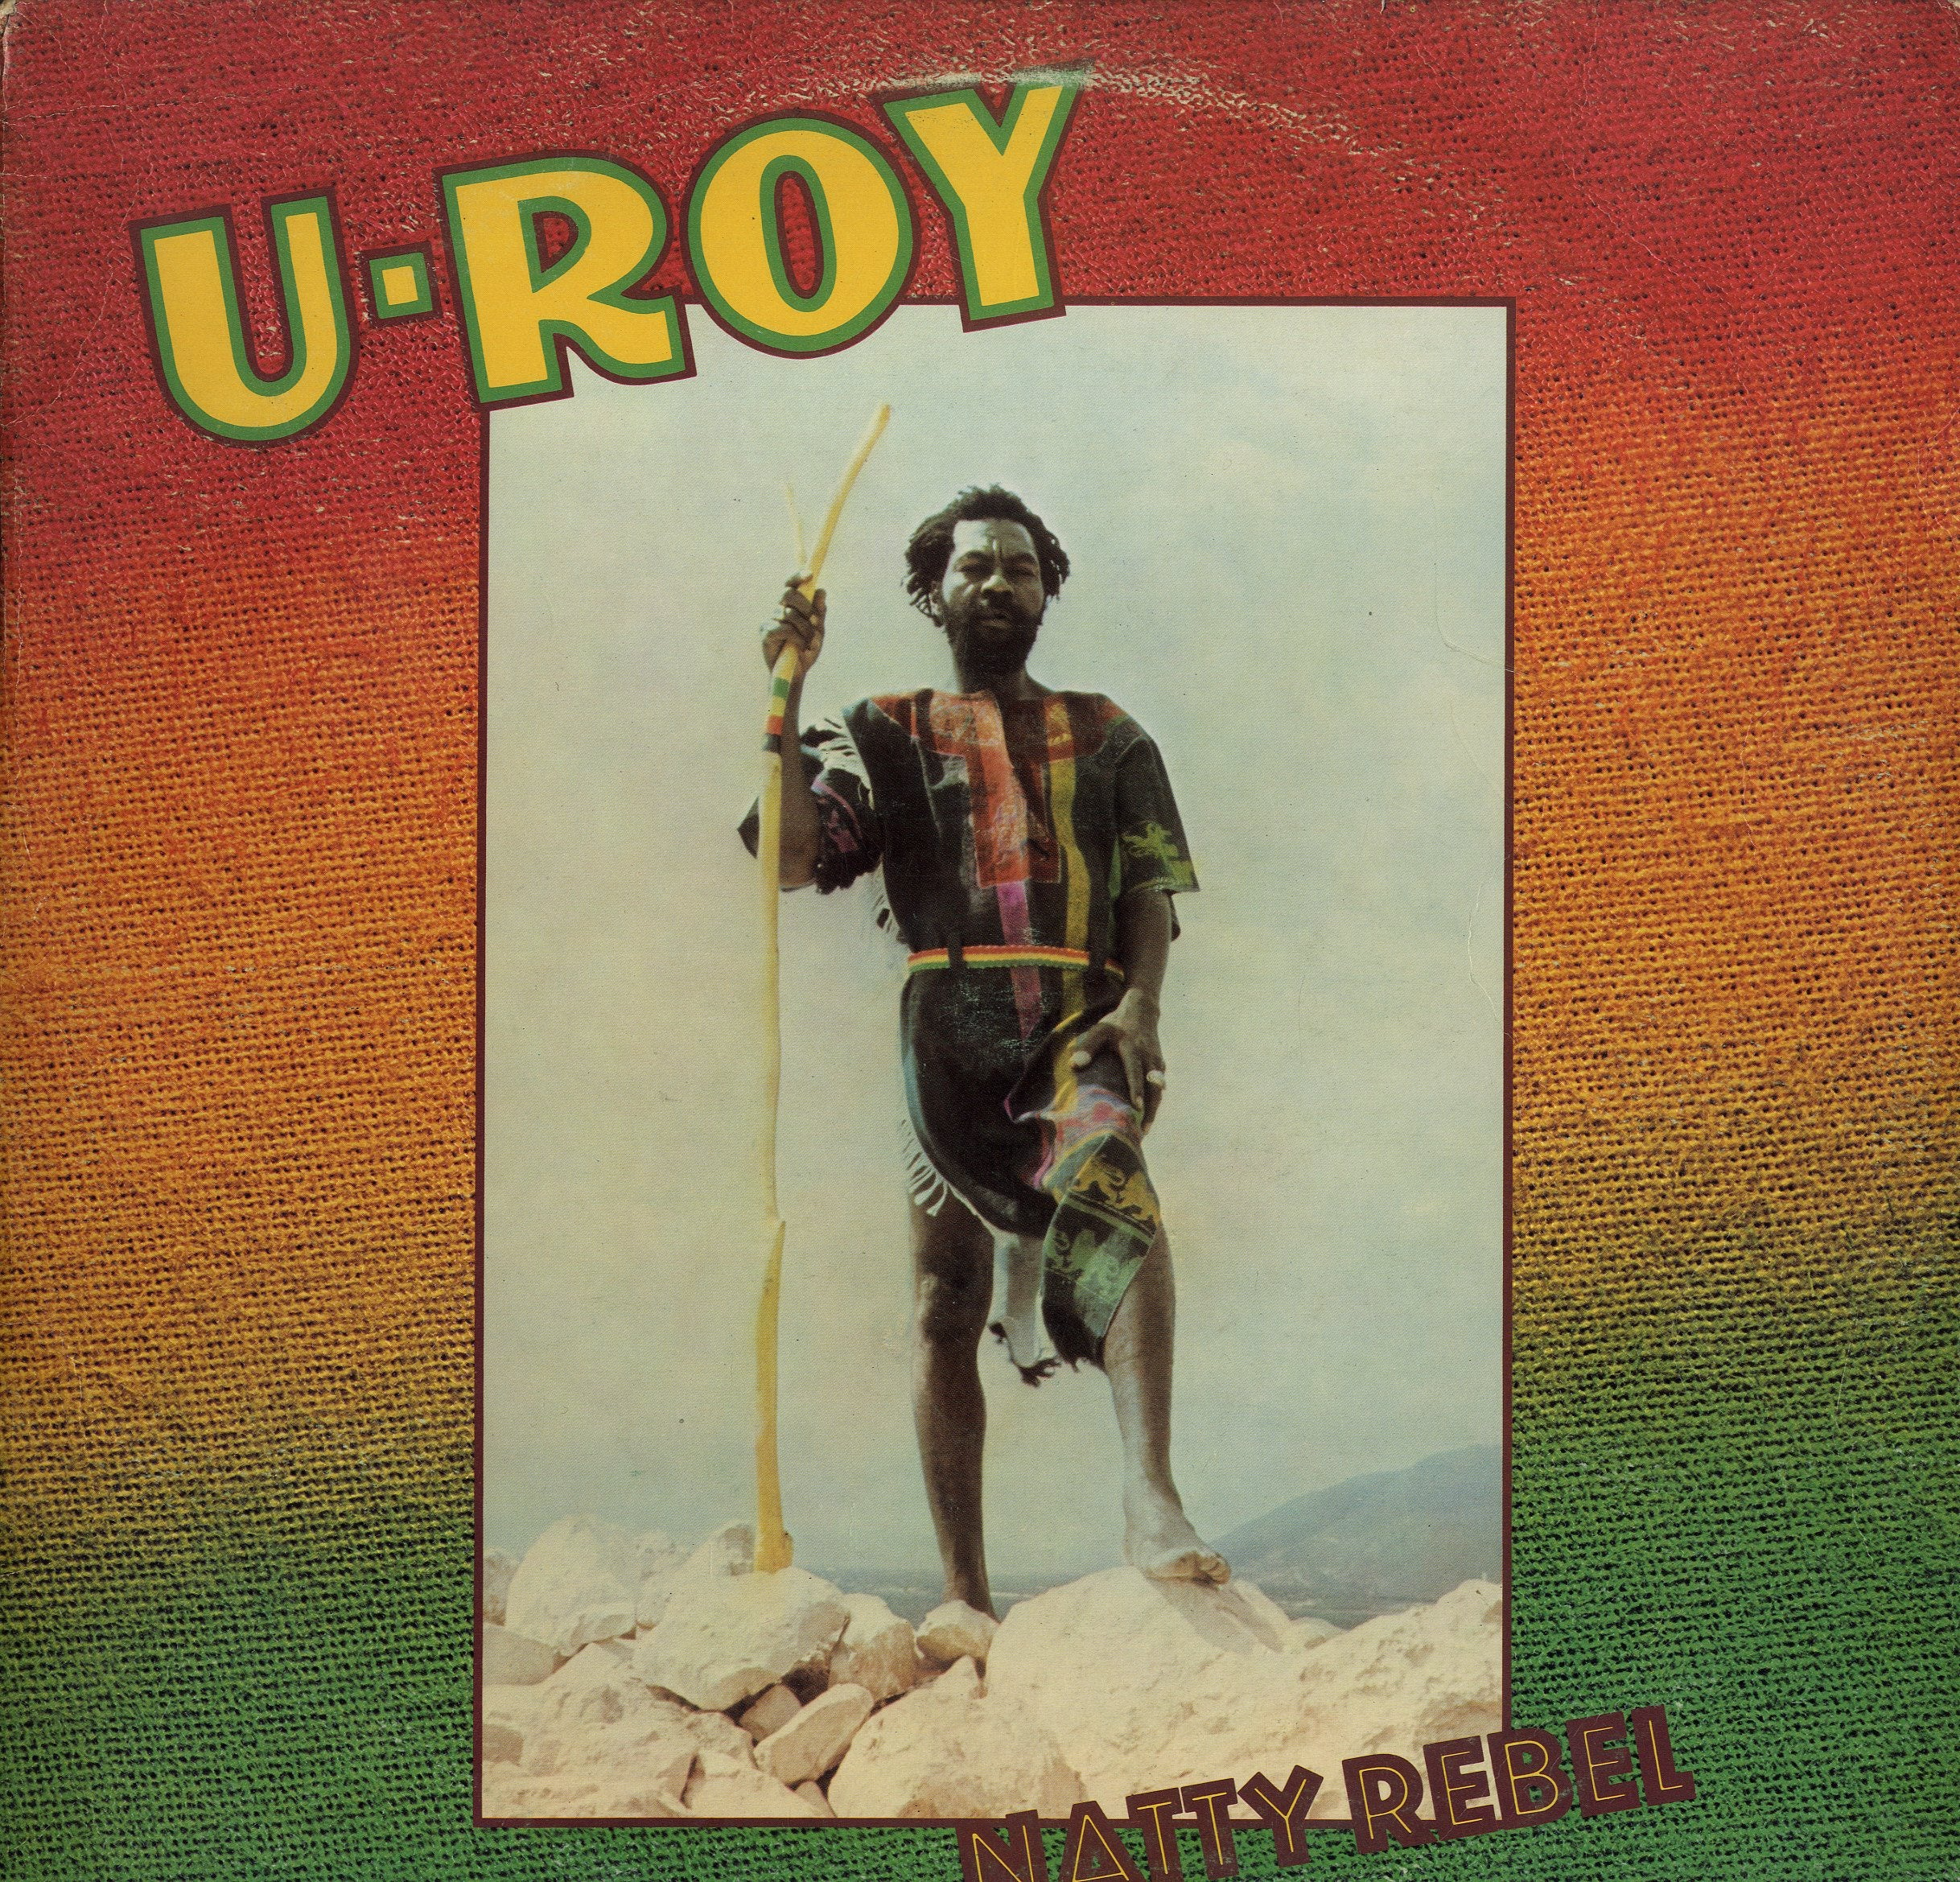 U ROY [Natty Rebel]